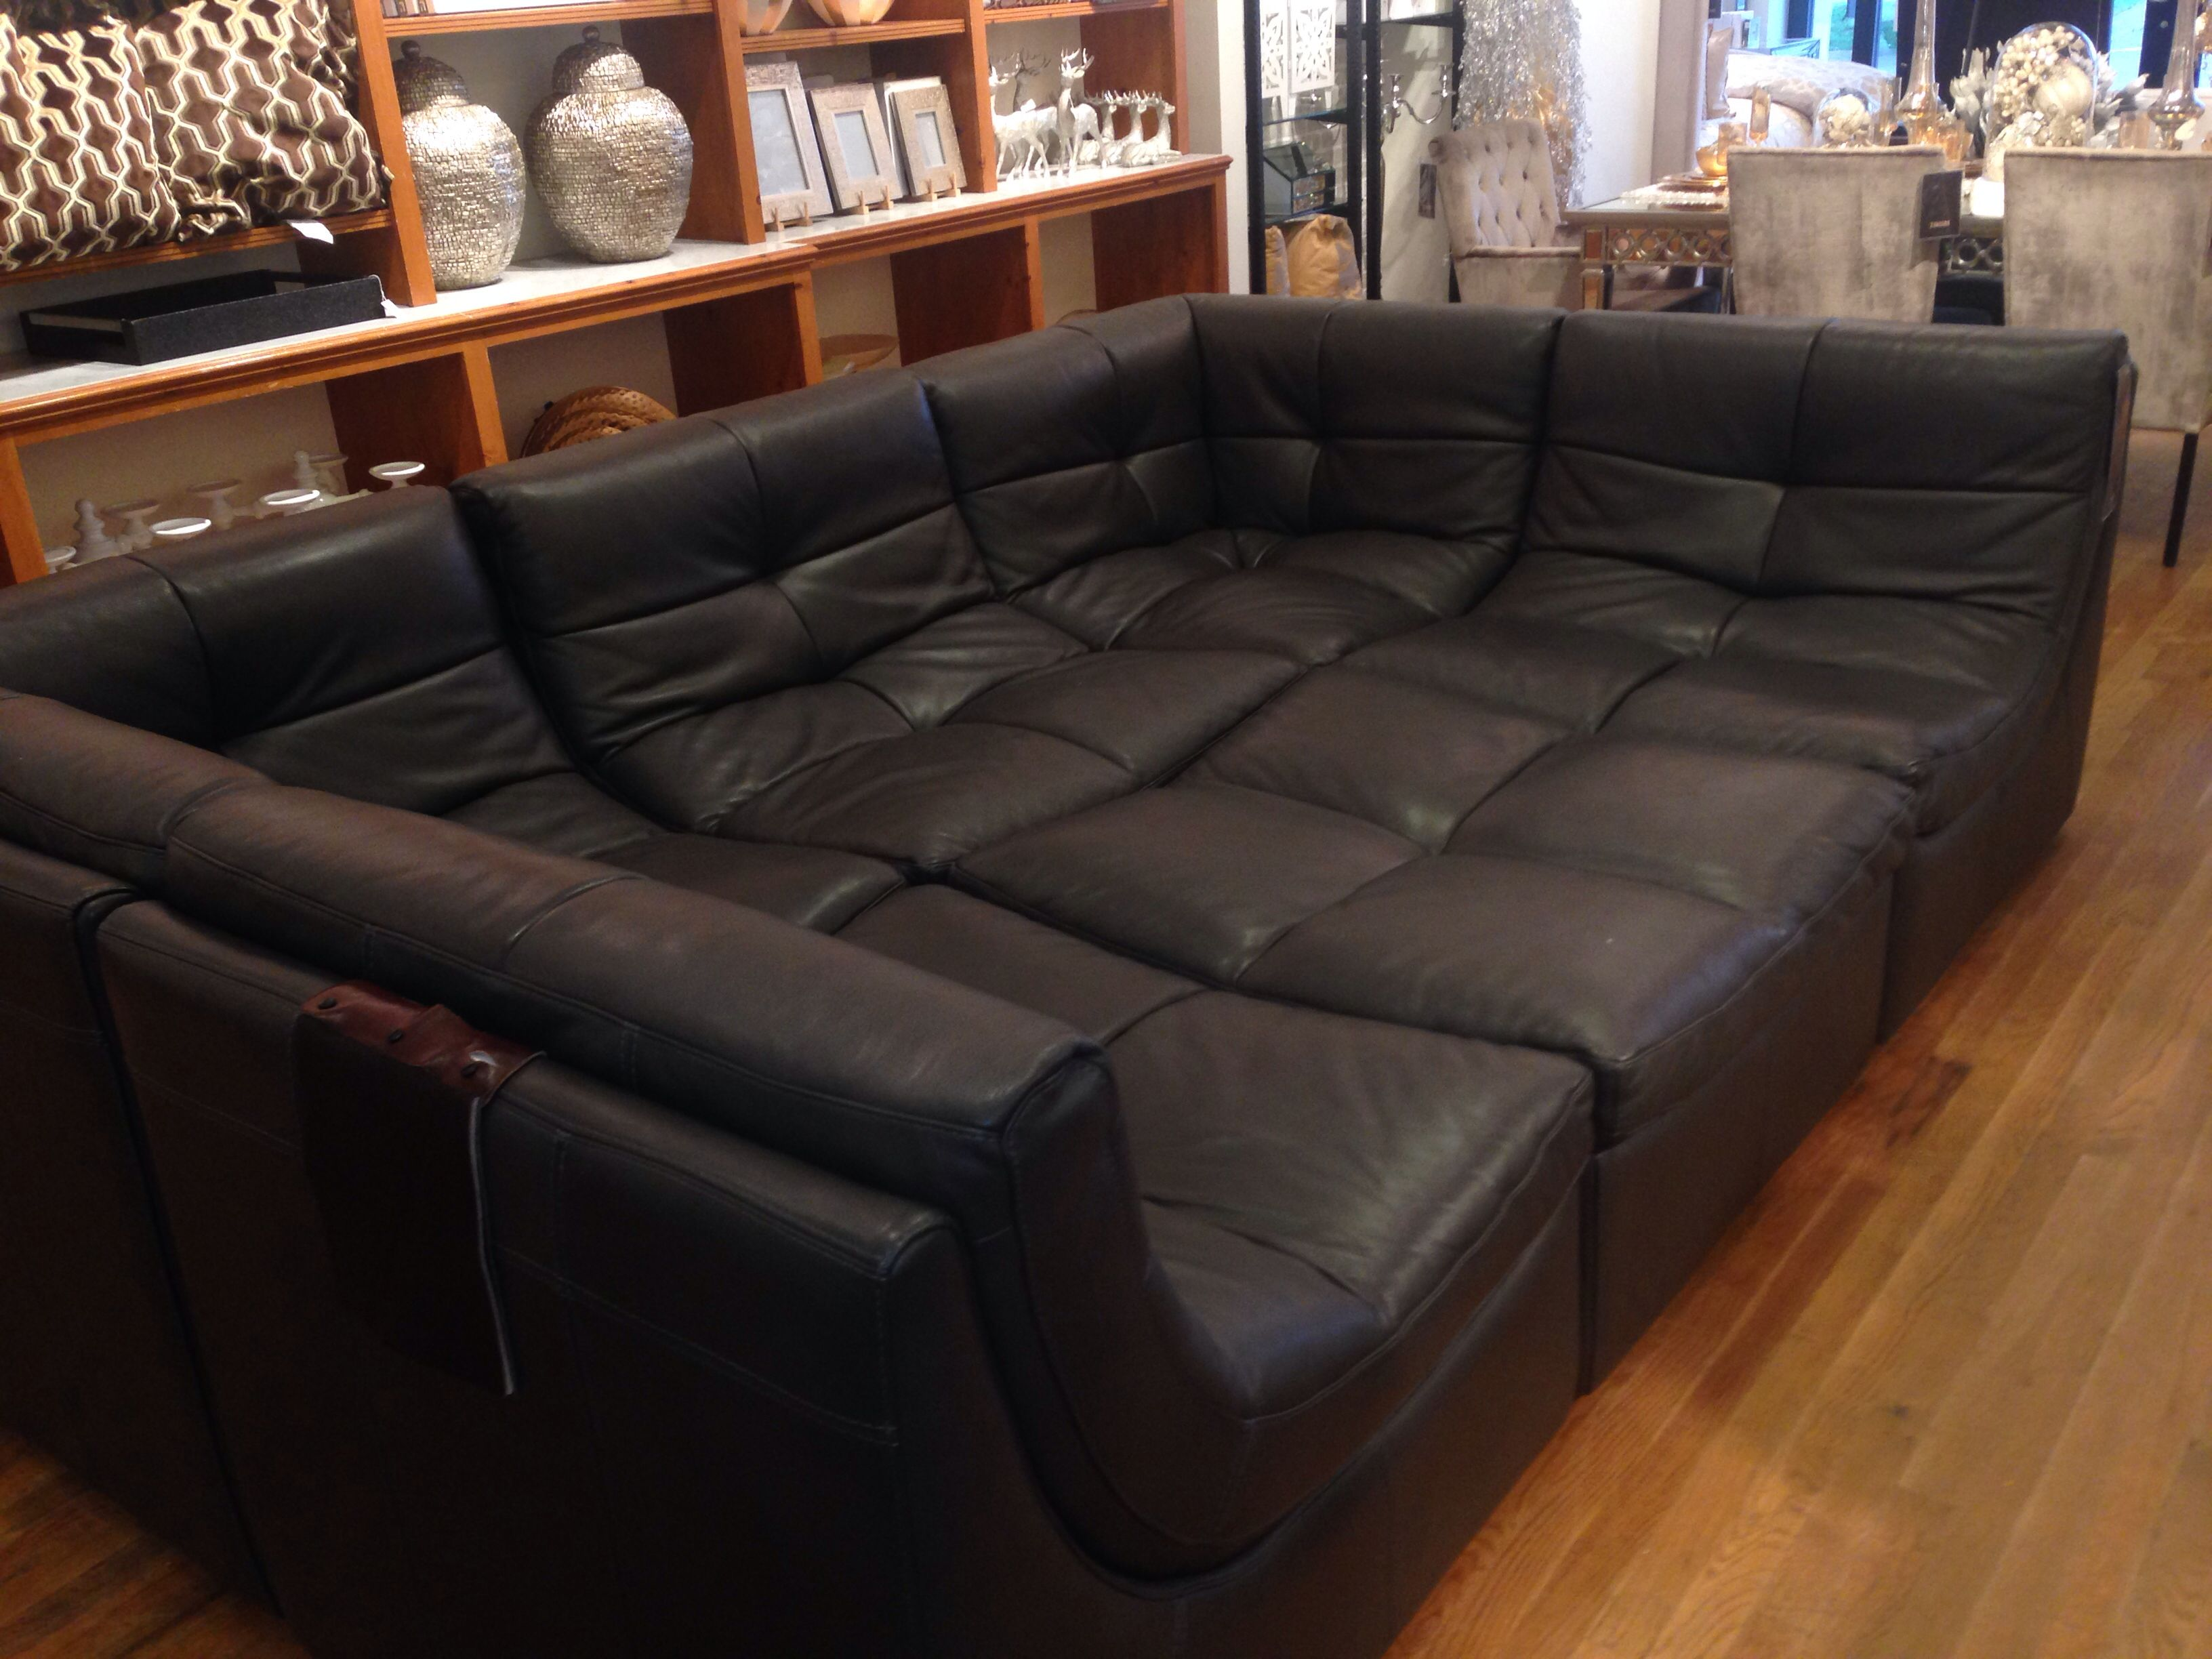 large couch for my place pinterest movie rooms. Black Bedroom Furniture Sets. Home Design Ideas